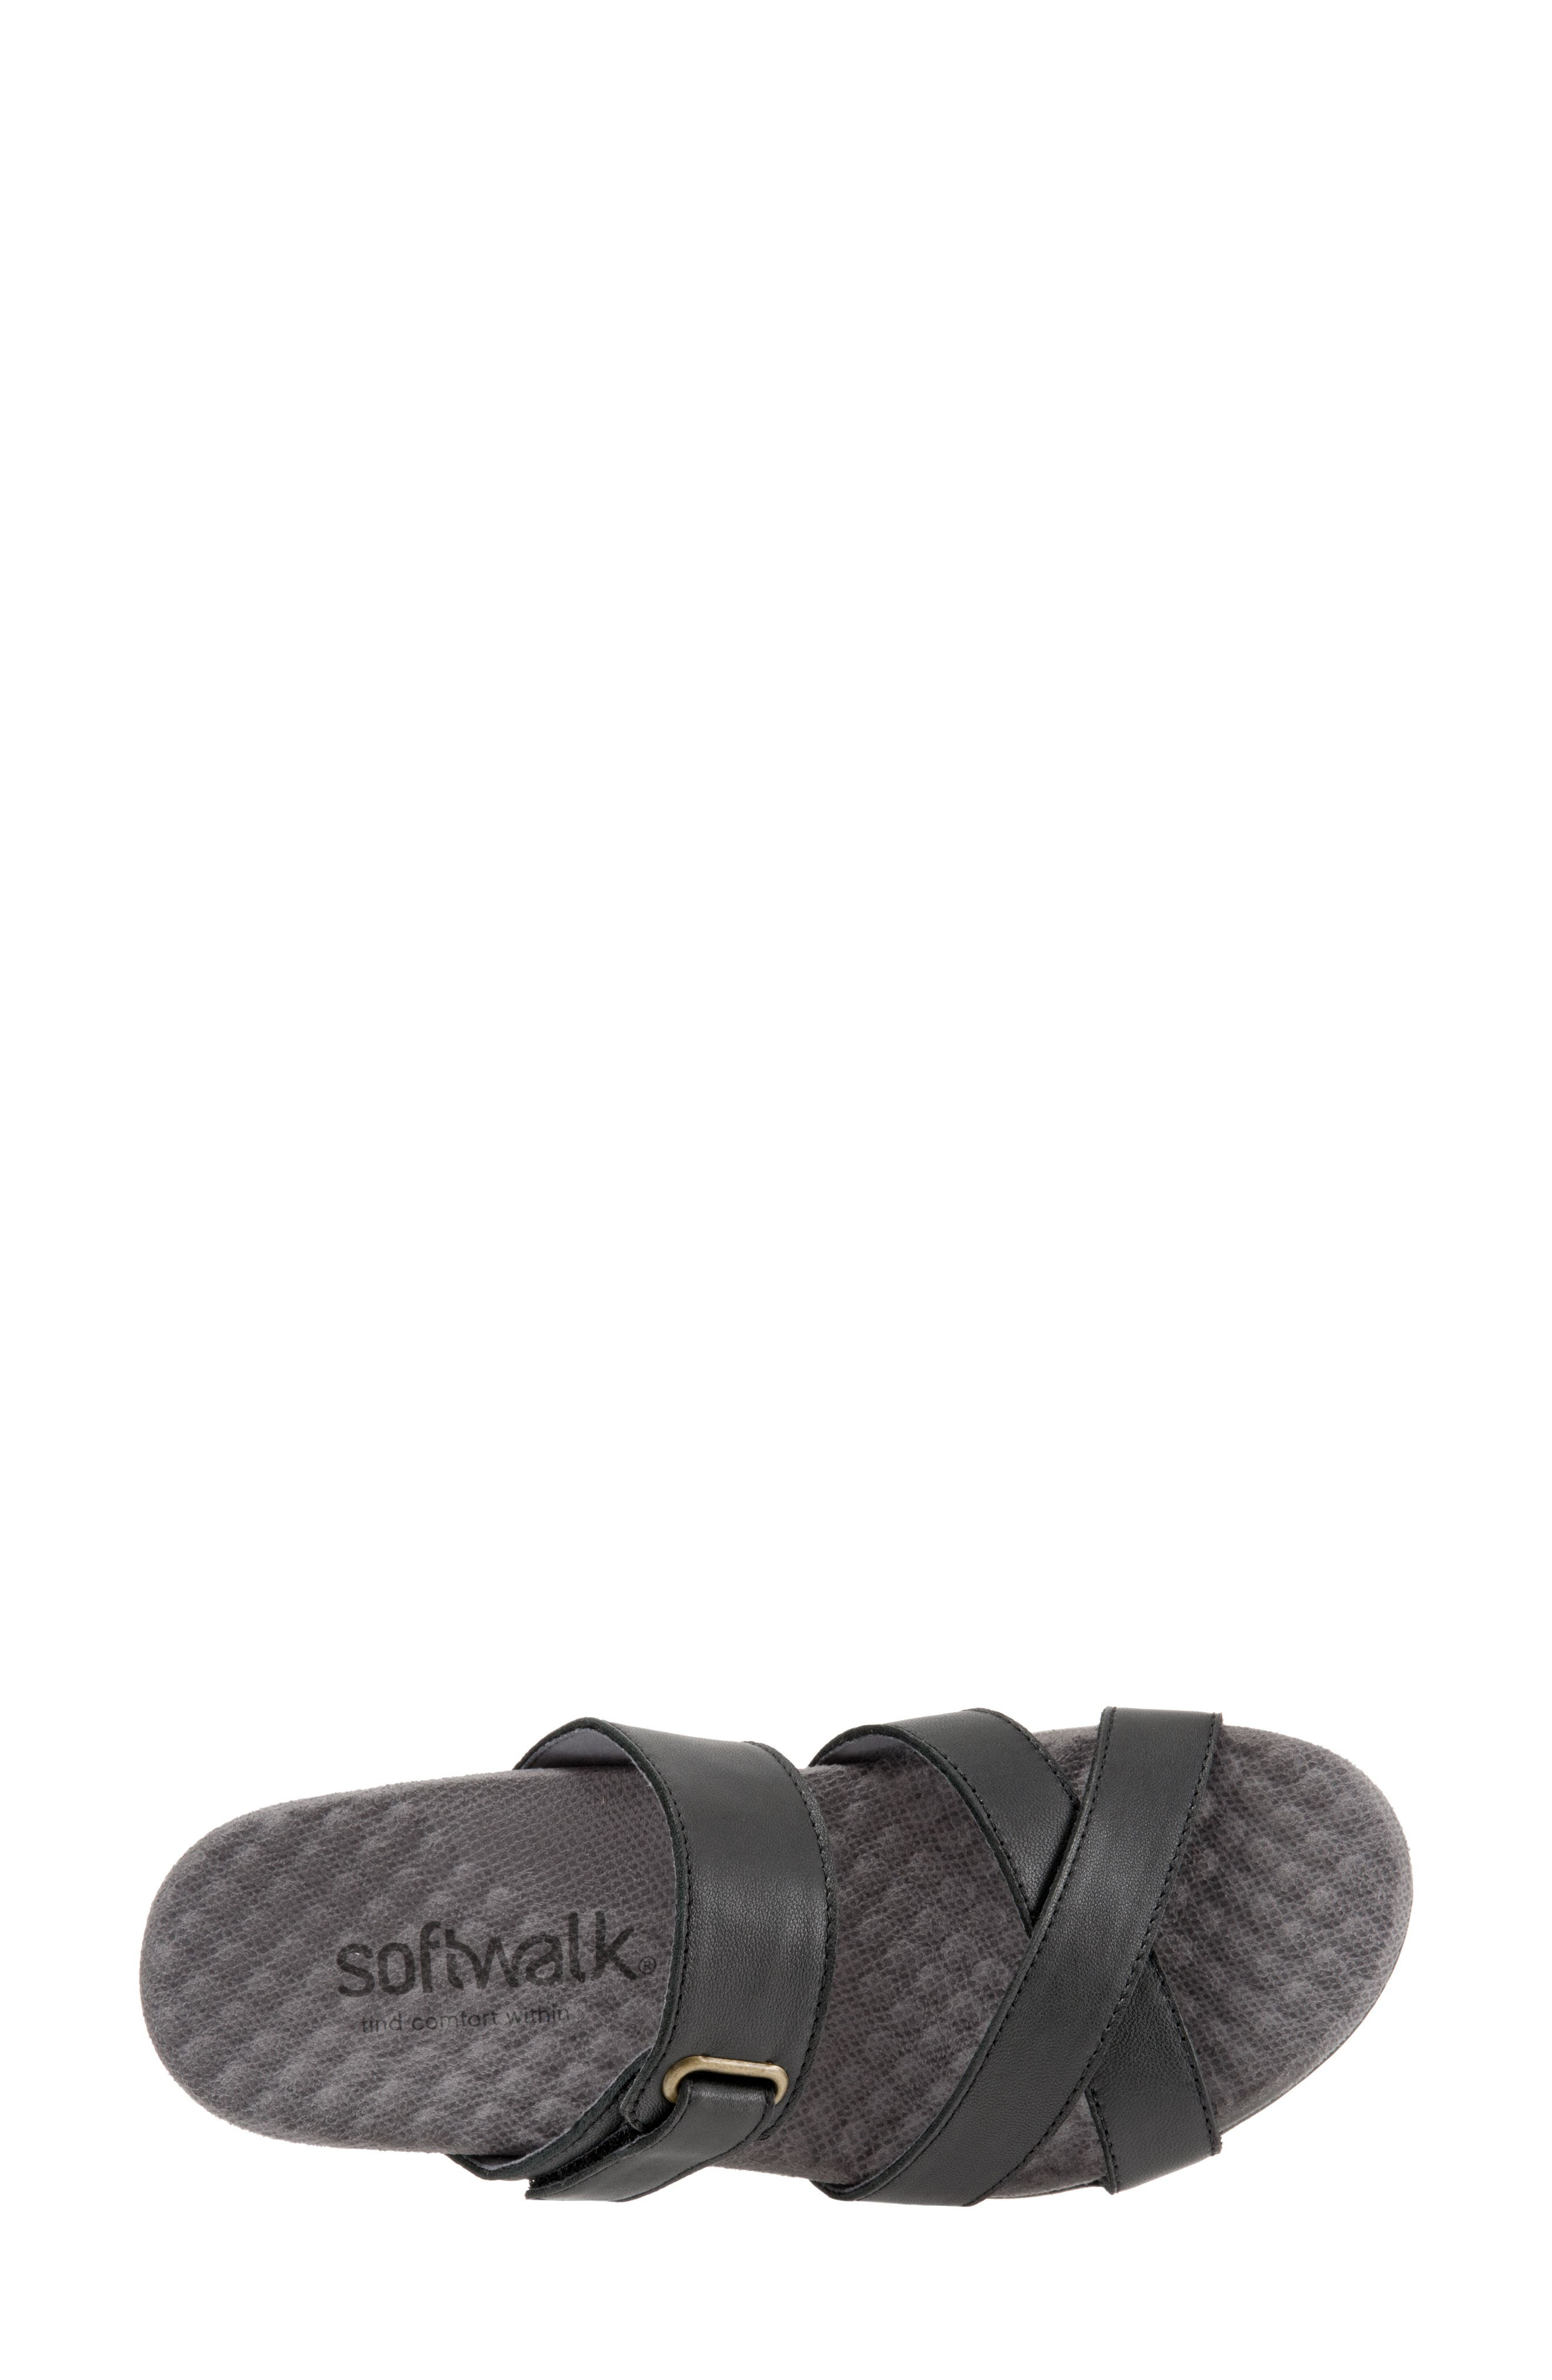 Brimley Sandal,                             Alternate thumbnail 4, color,                             Black Leather